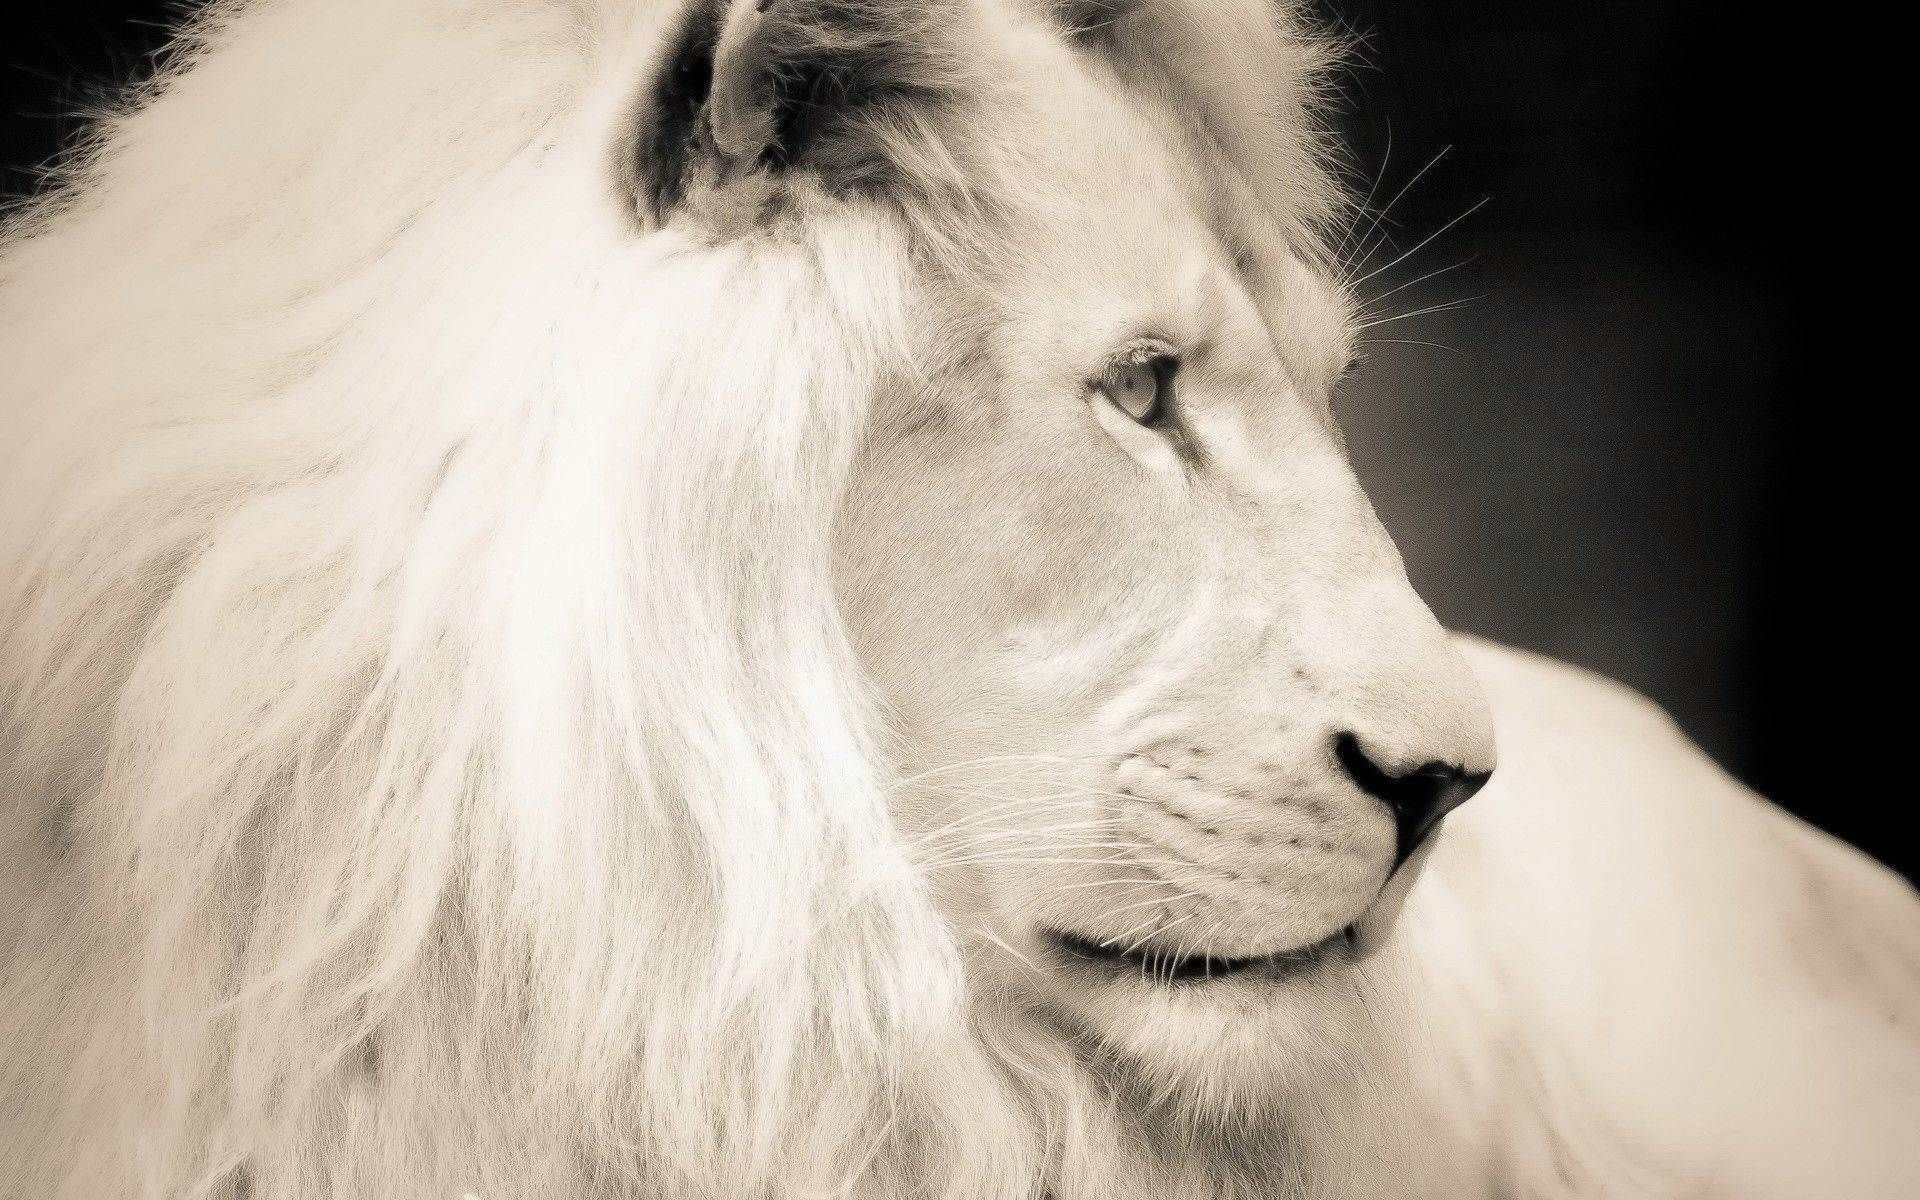 Download Hd White Lion Wallpapers For Desktop Background Free Hd 1920 1200 White Lion Images Adorable Wallpaper White Lion Images Lion Images Lion Wallpaper